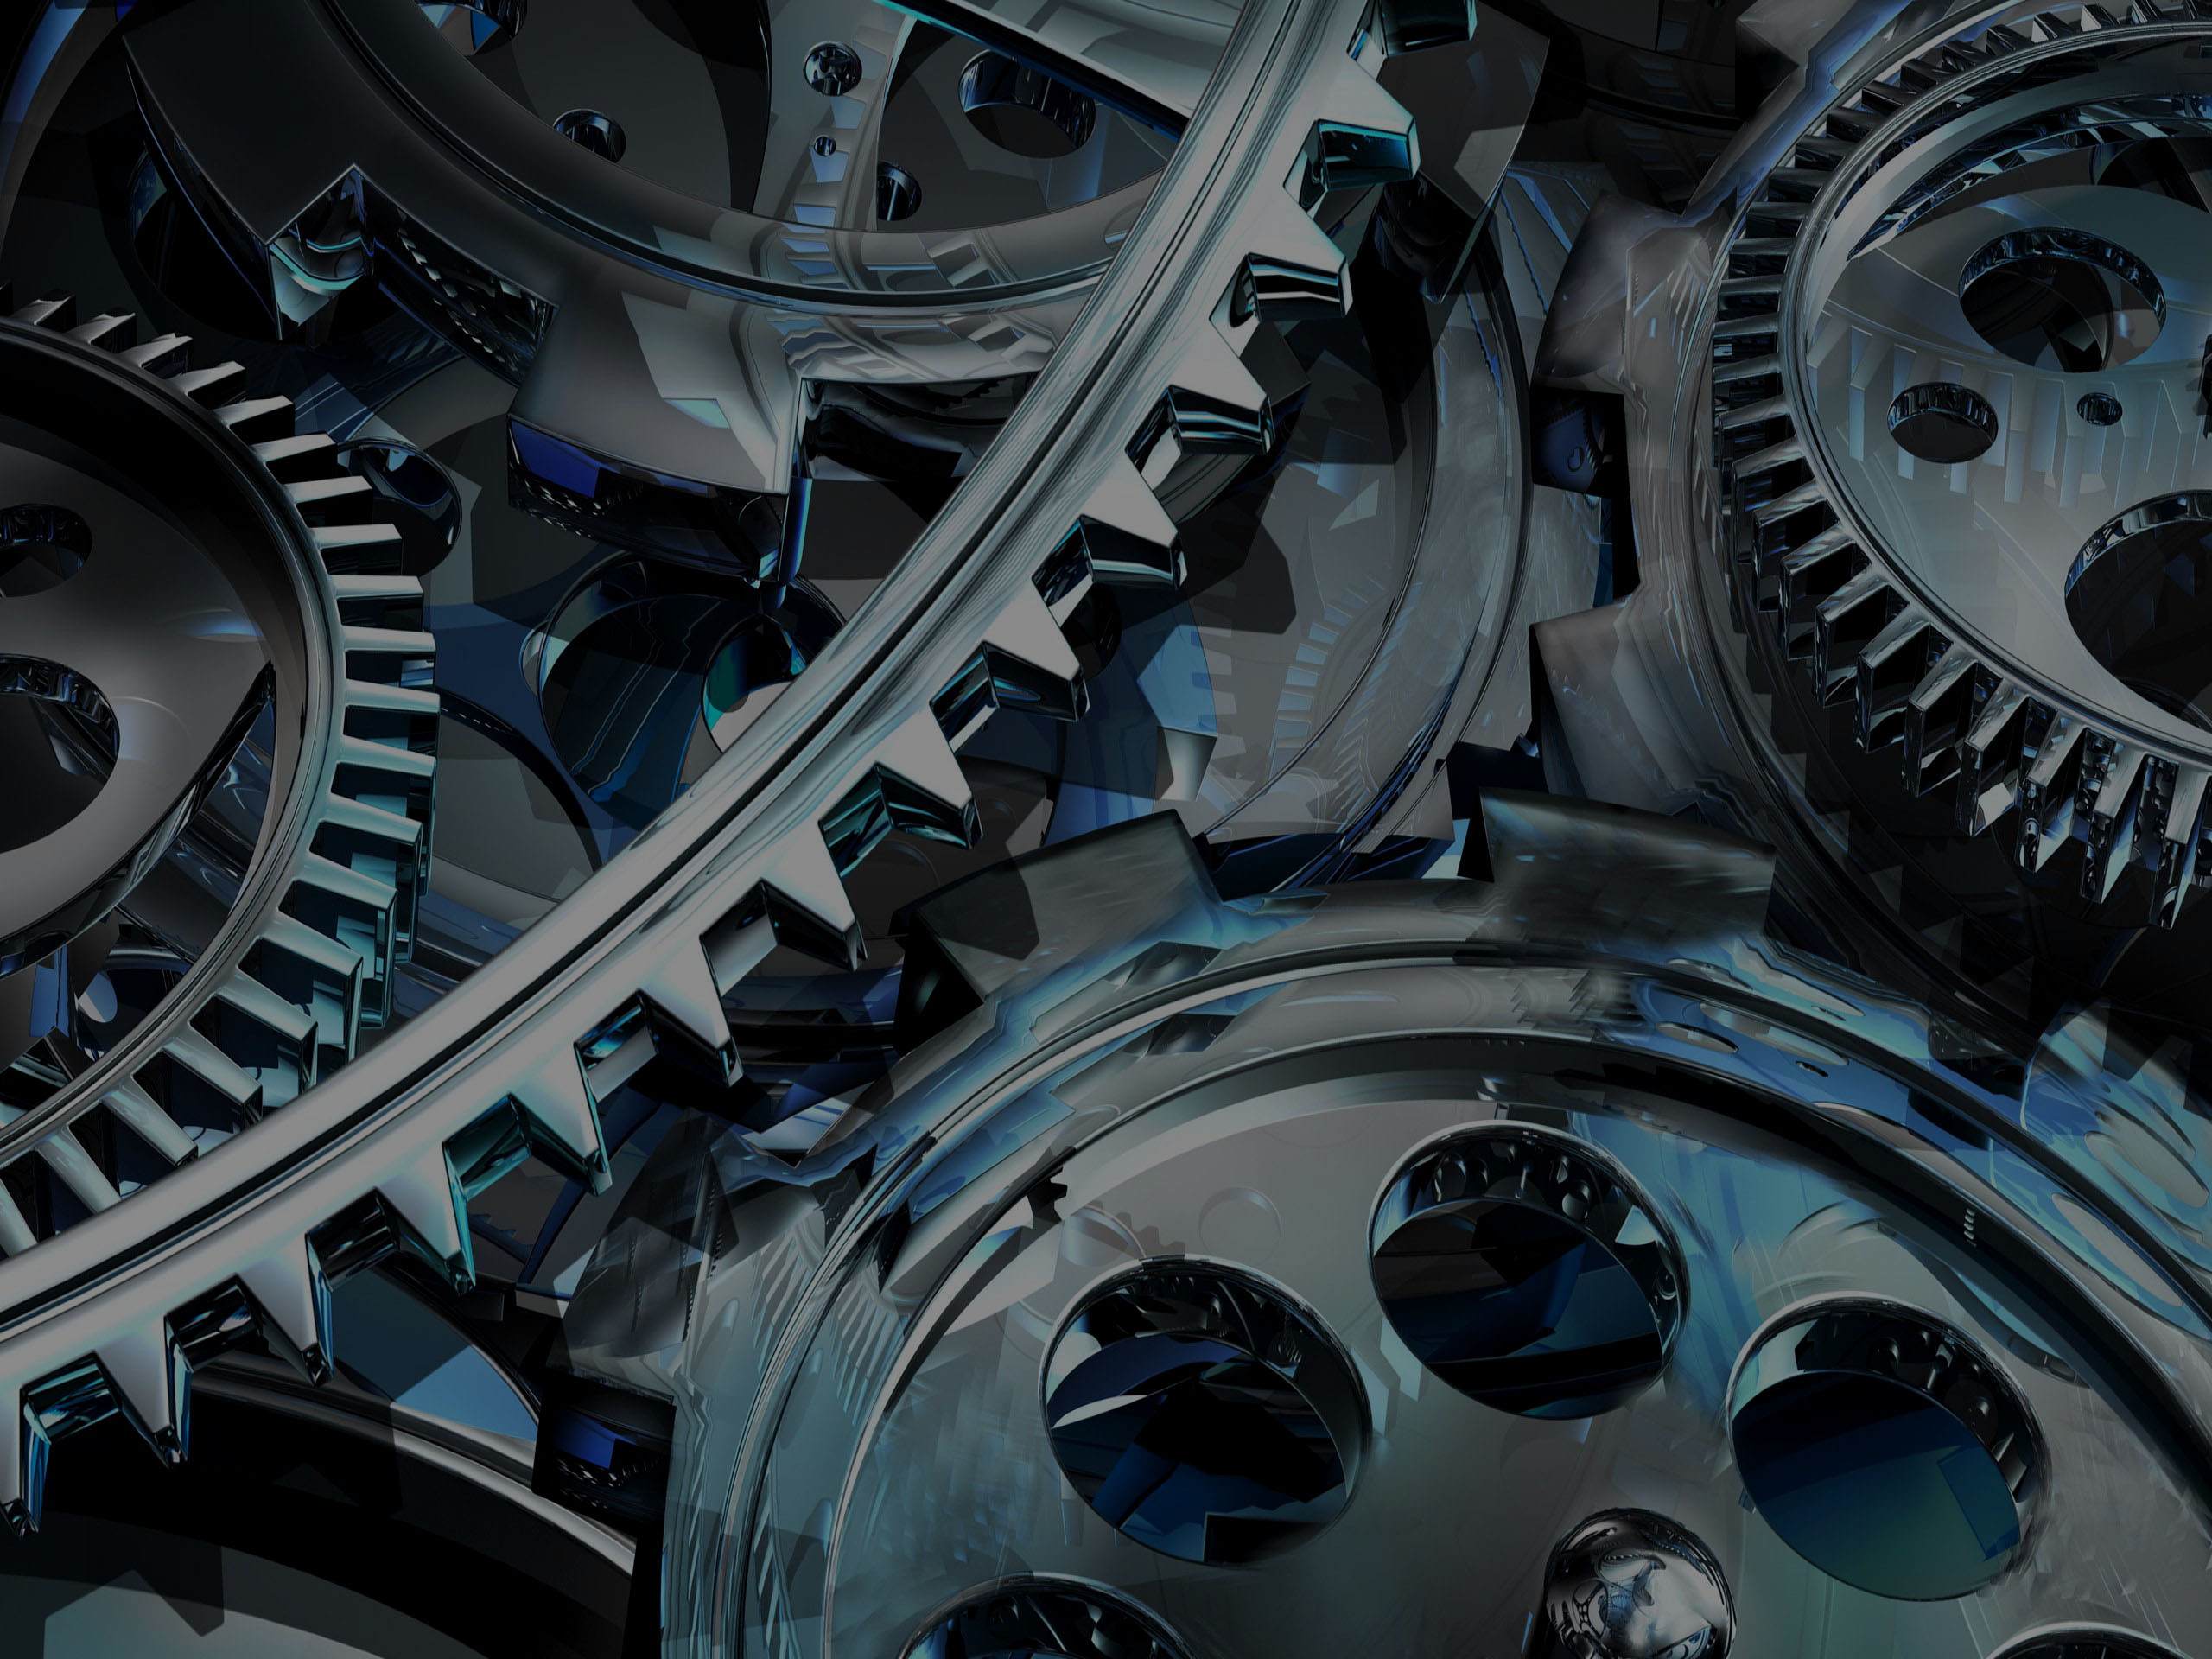 Wallpapers mechanical engineering design free large - Hd wallpaper mechanical engineering ...